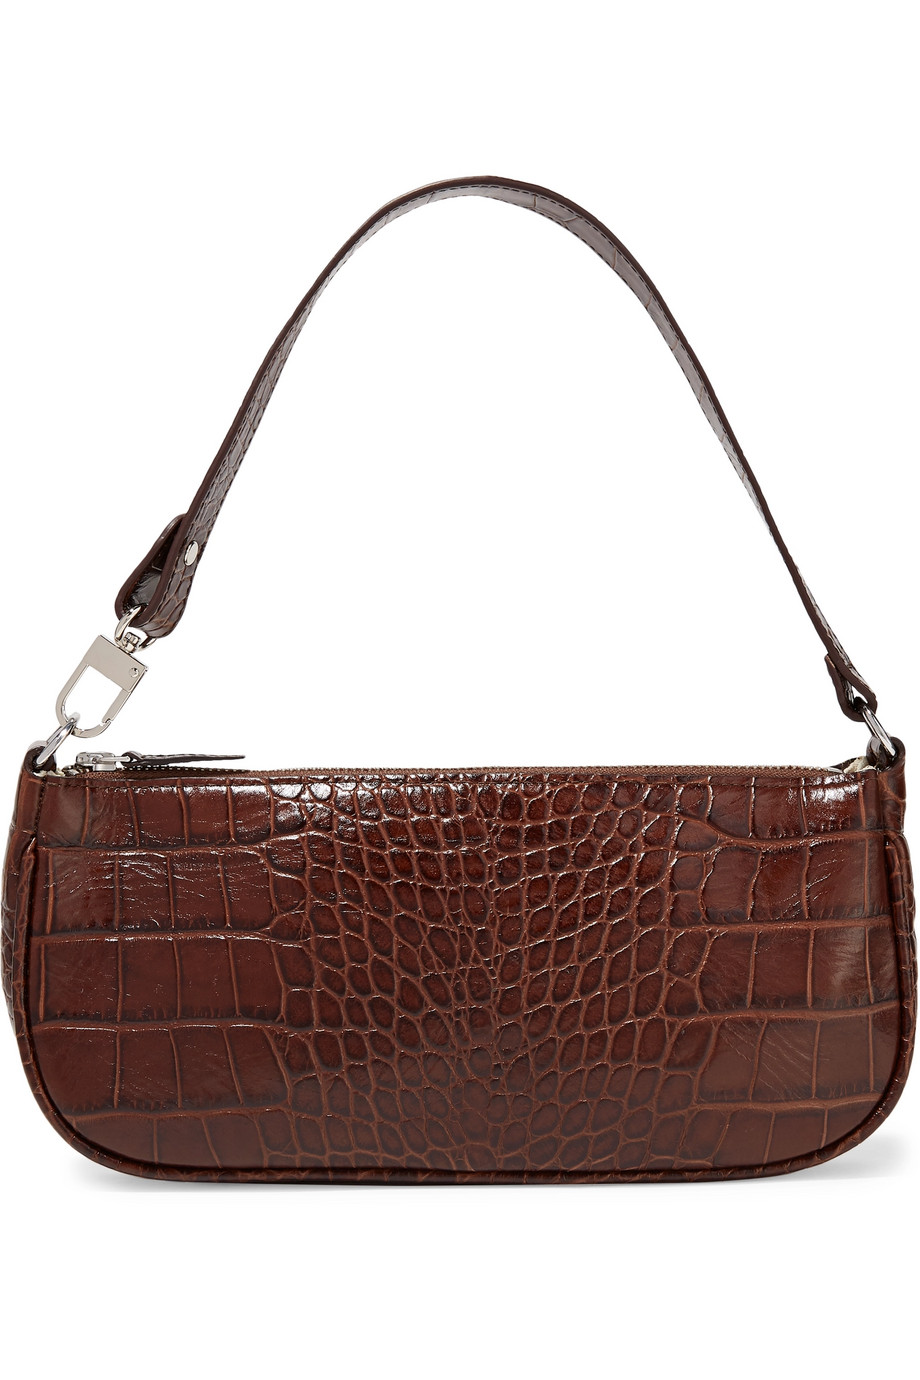 Rachel croc-effect leather shoulder bag by By-Far, available on net-a-porter.com for $365 Kylie Jenner Bags Exact Product